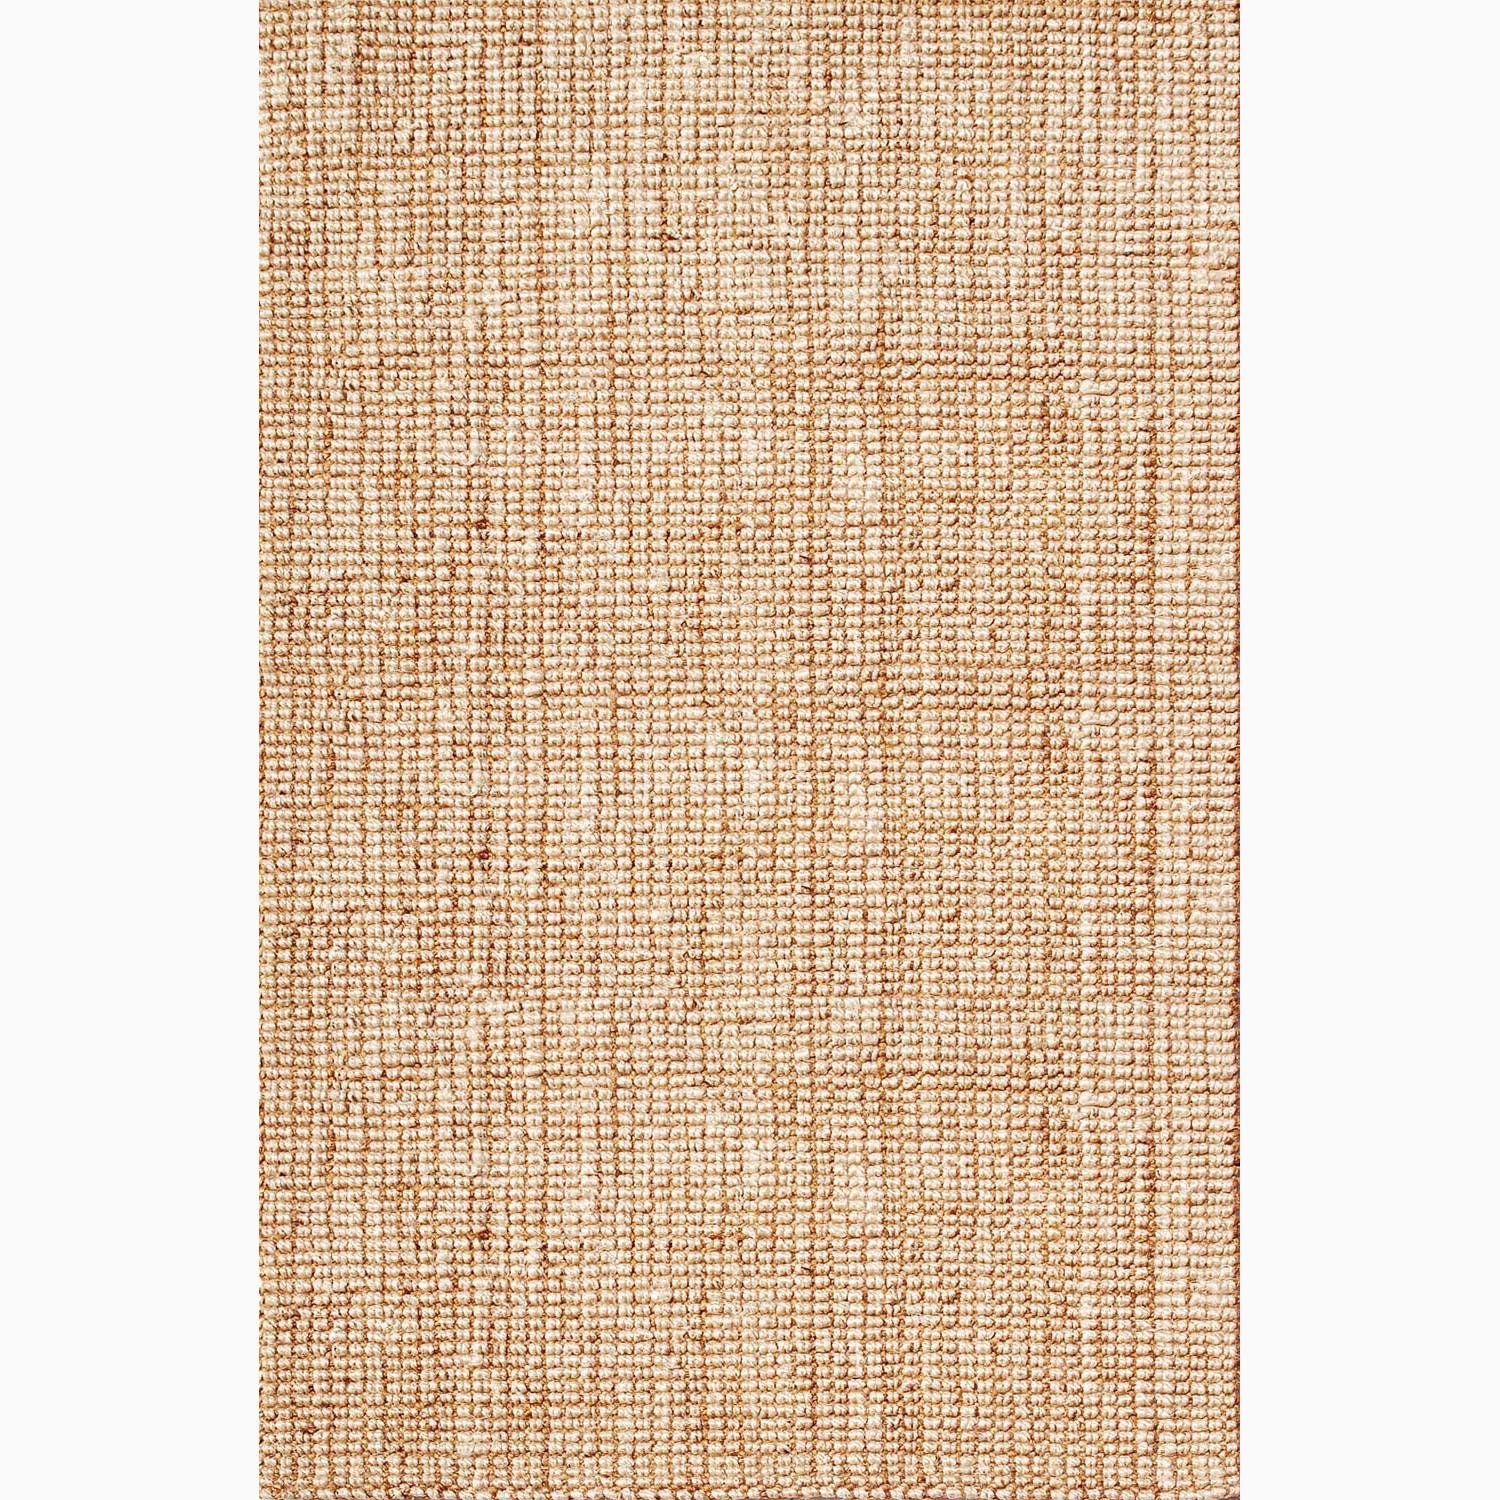 Handmade Ivory/ White Natural Jute Accent Rug (2 x 3)